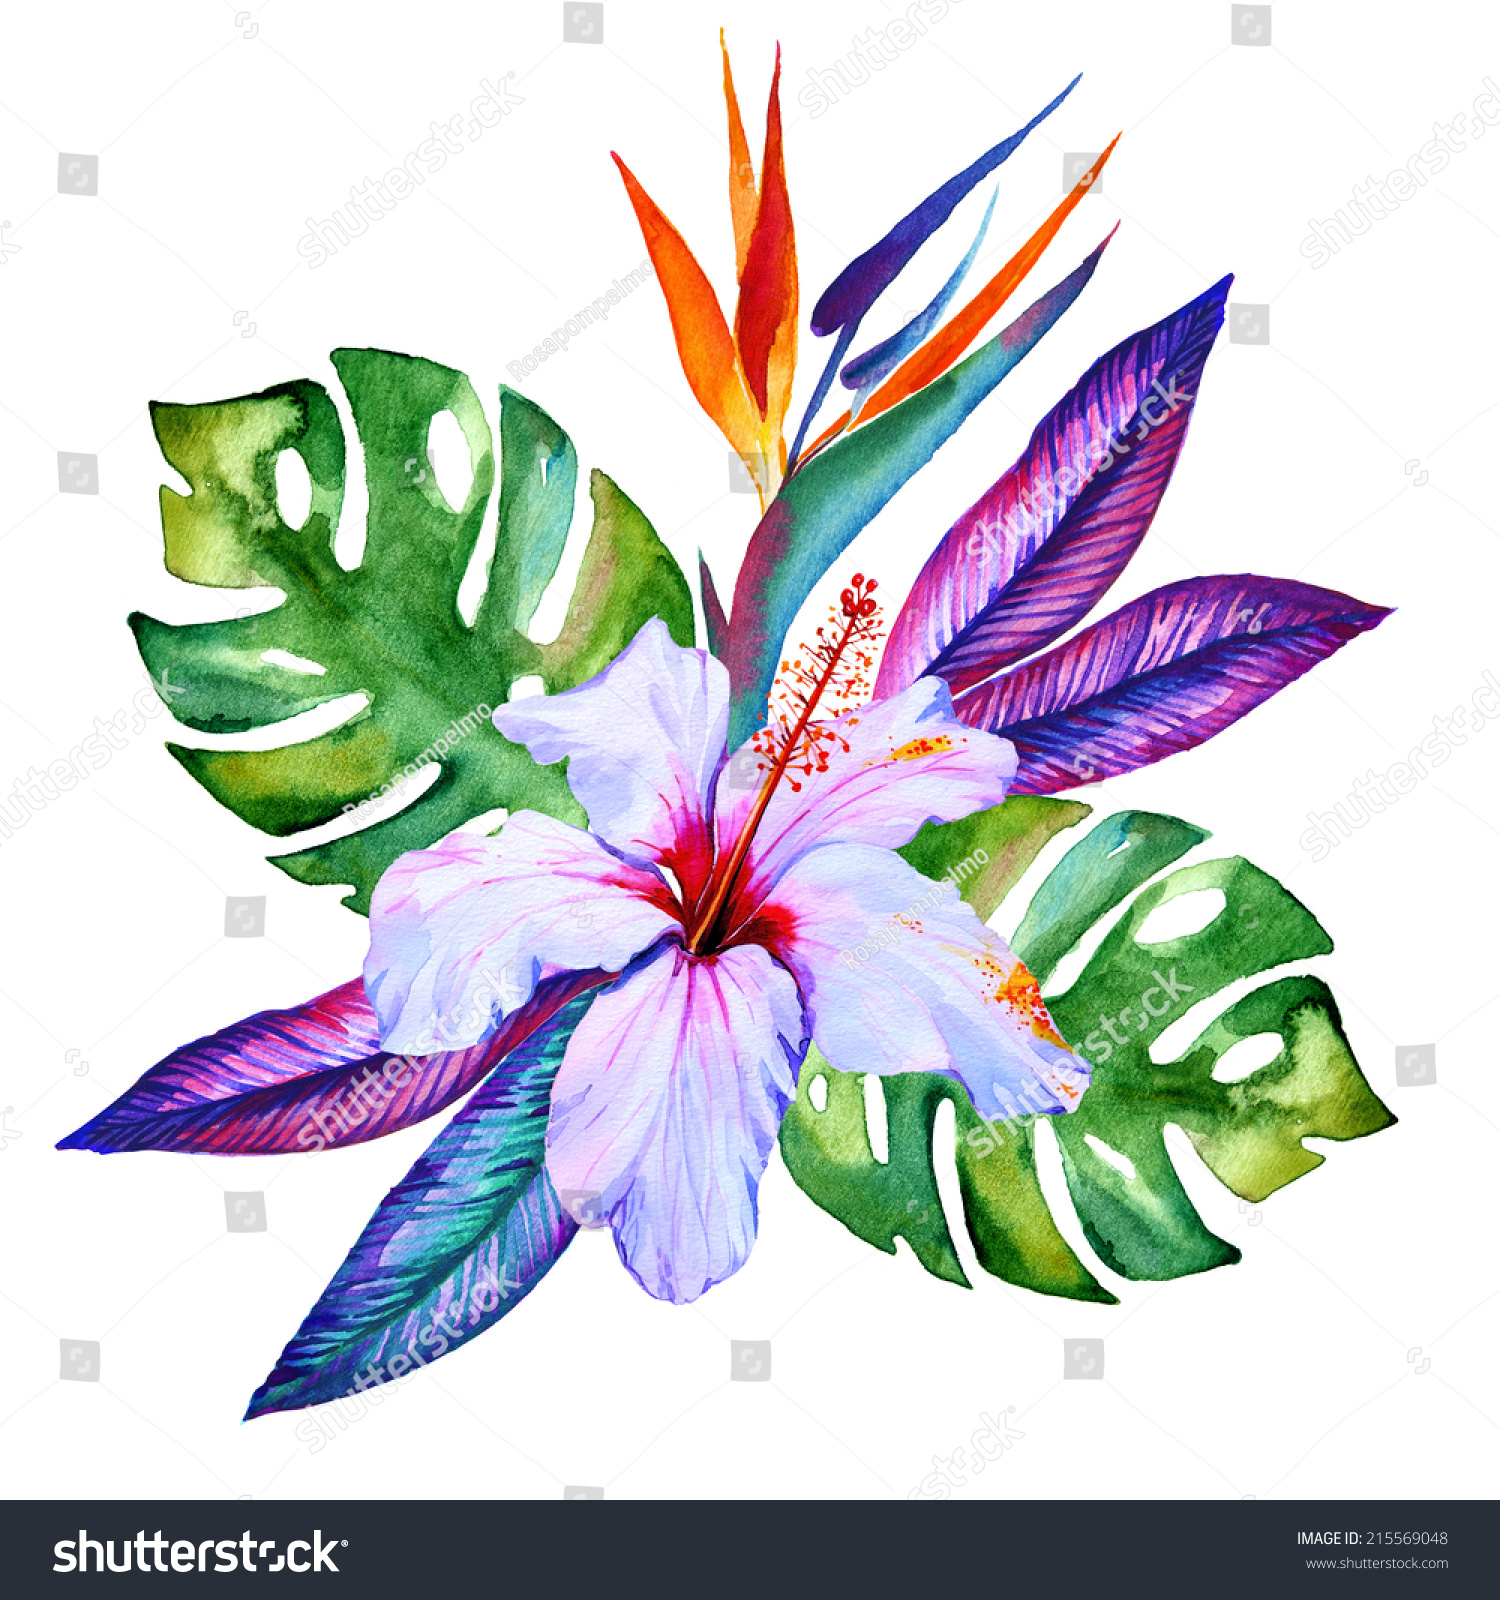 Tropical Flowers Watercolor Hibiscus Plumeria Monstera Stock Illustration 215569048 - Shutterstock